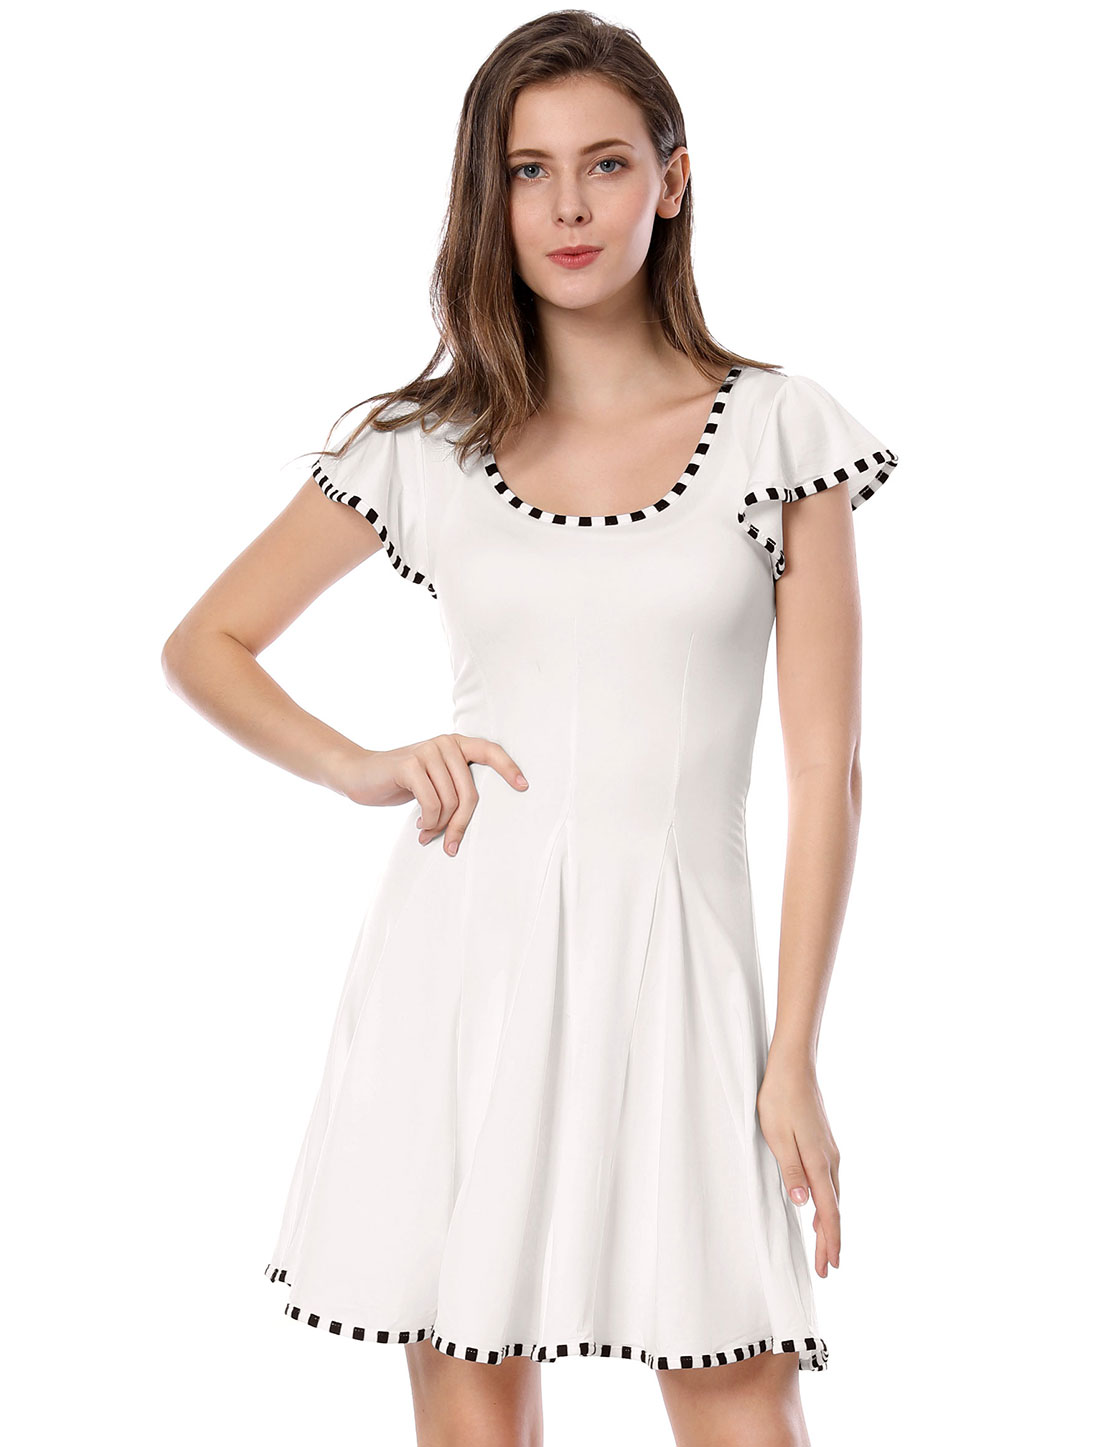 Woman Chic Scoop Neck Short Ruffled Sleeve White Mini Dress L